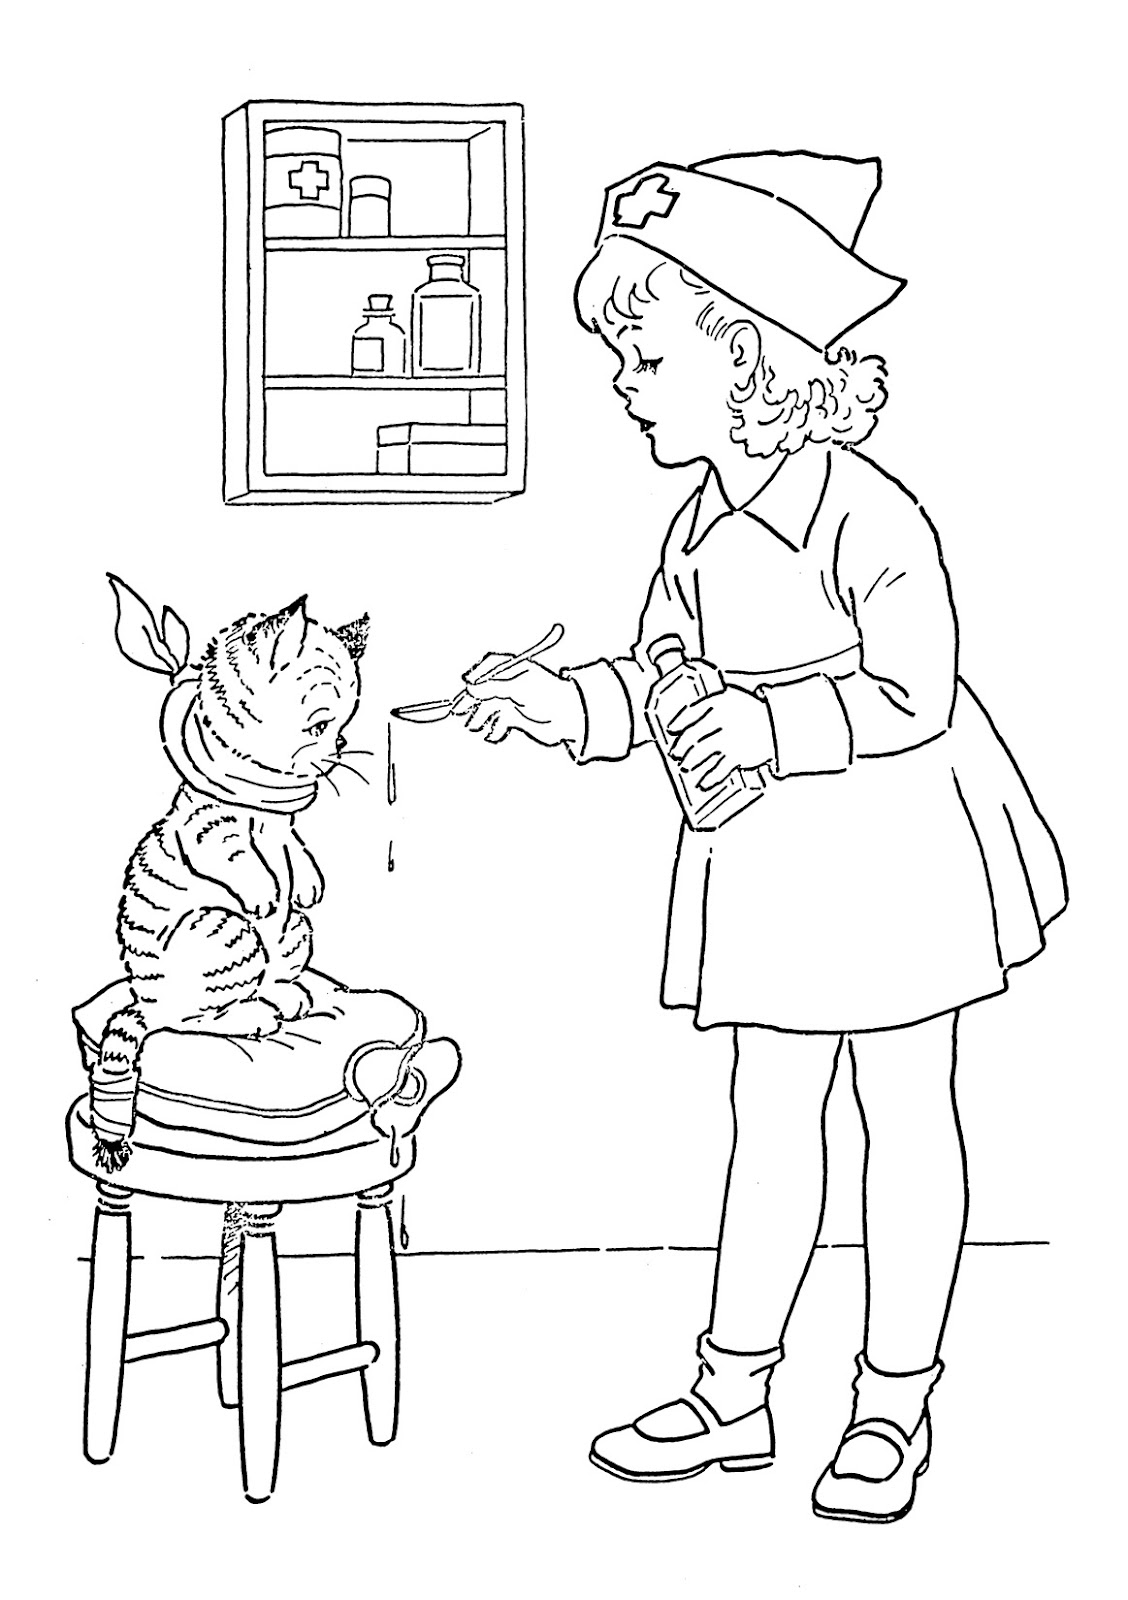 - Kids Vintage Printable - Coloring Page - Lil Nurse - The Graphics